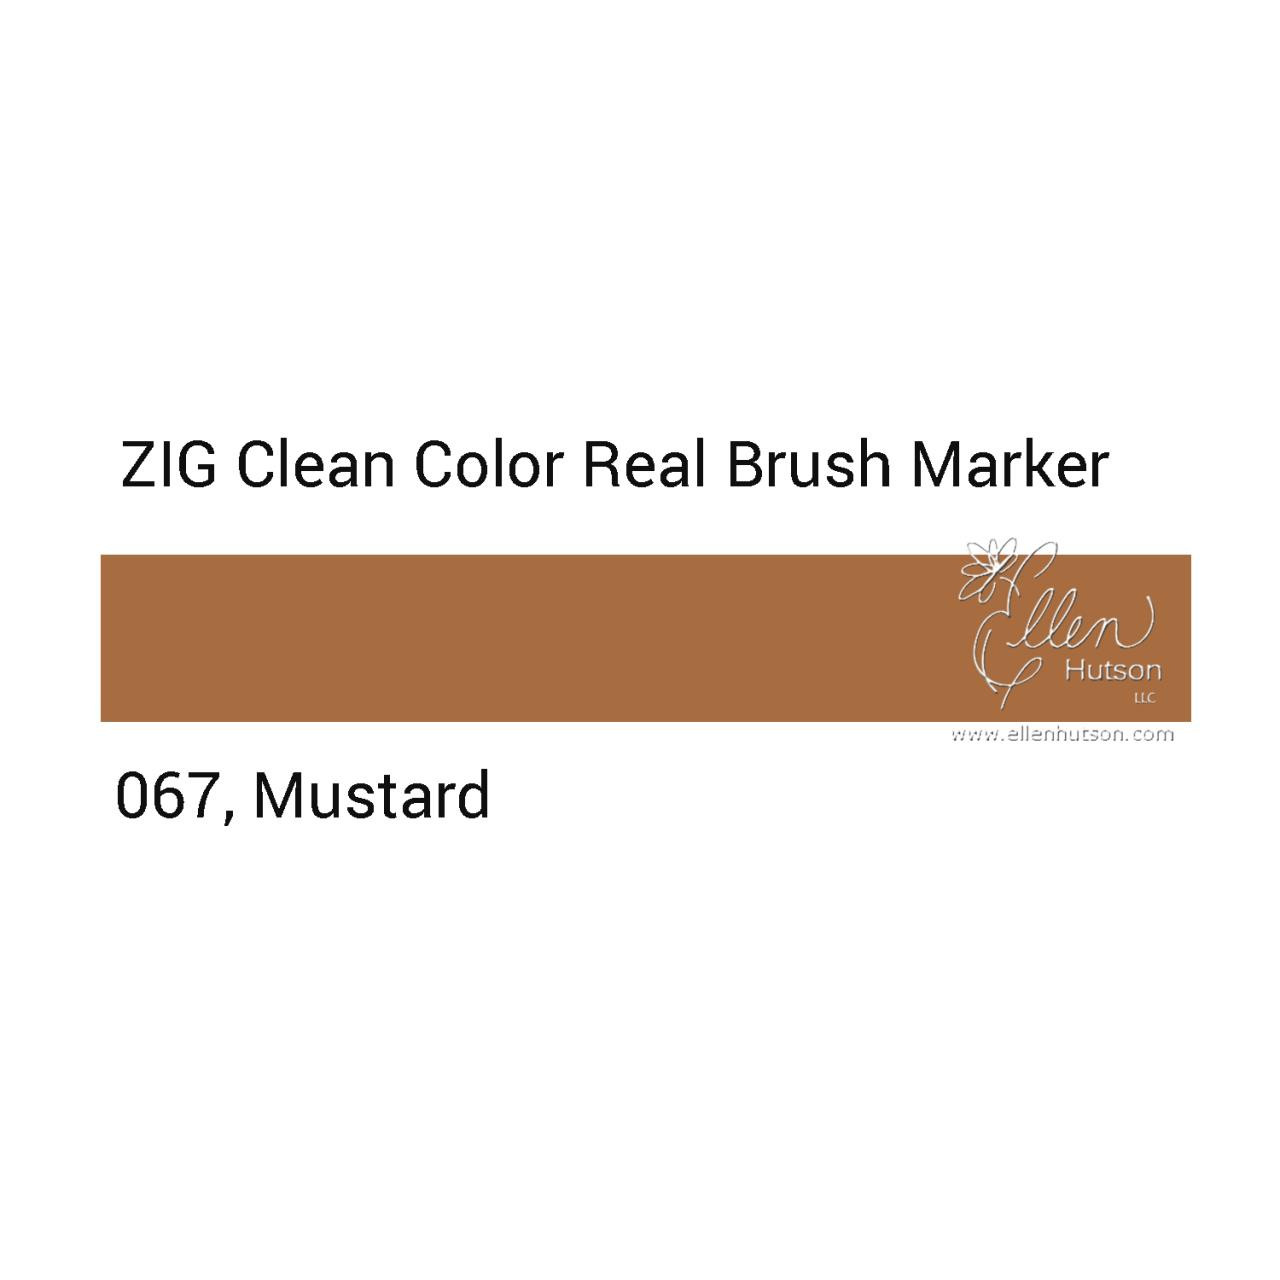 067 - Mustard, ZIG Clean Color Real Brush Marker -